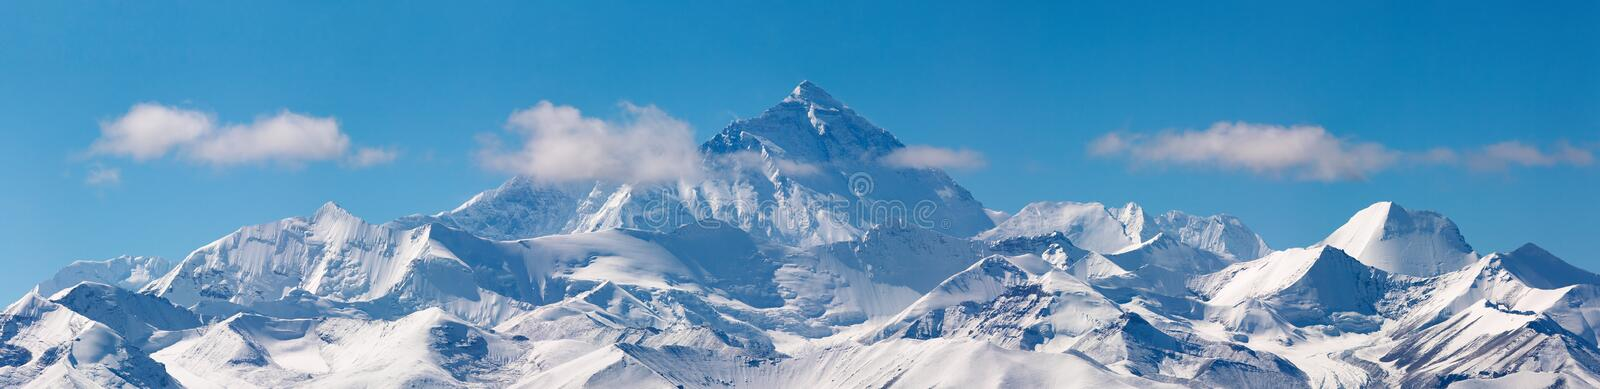 Support Everest images stock